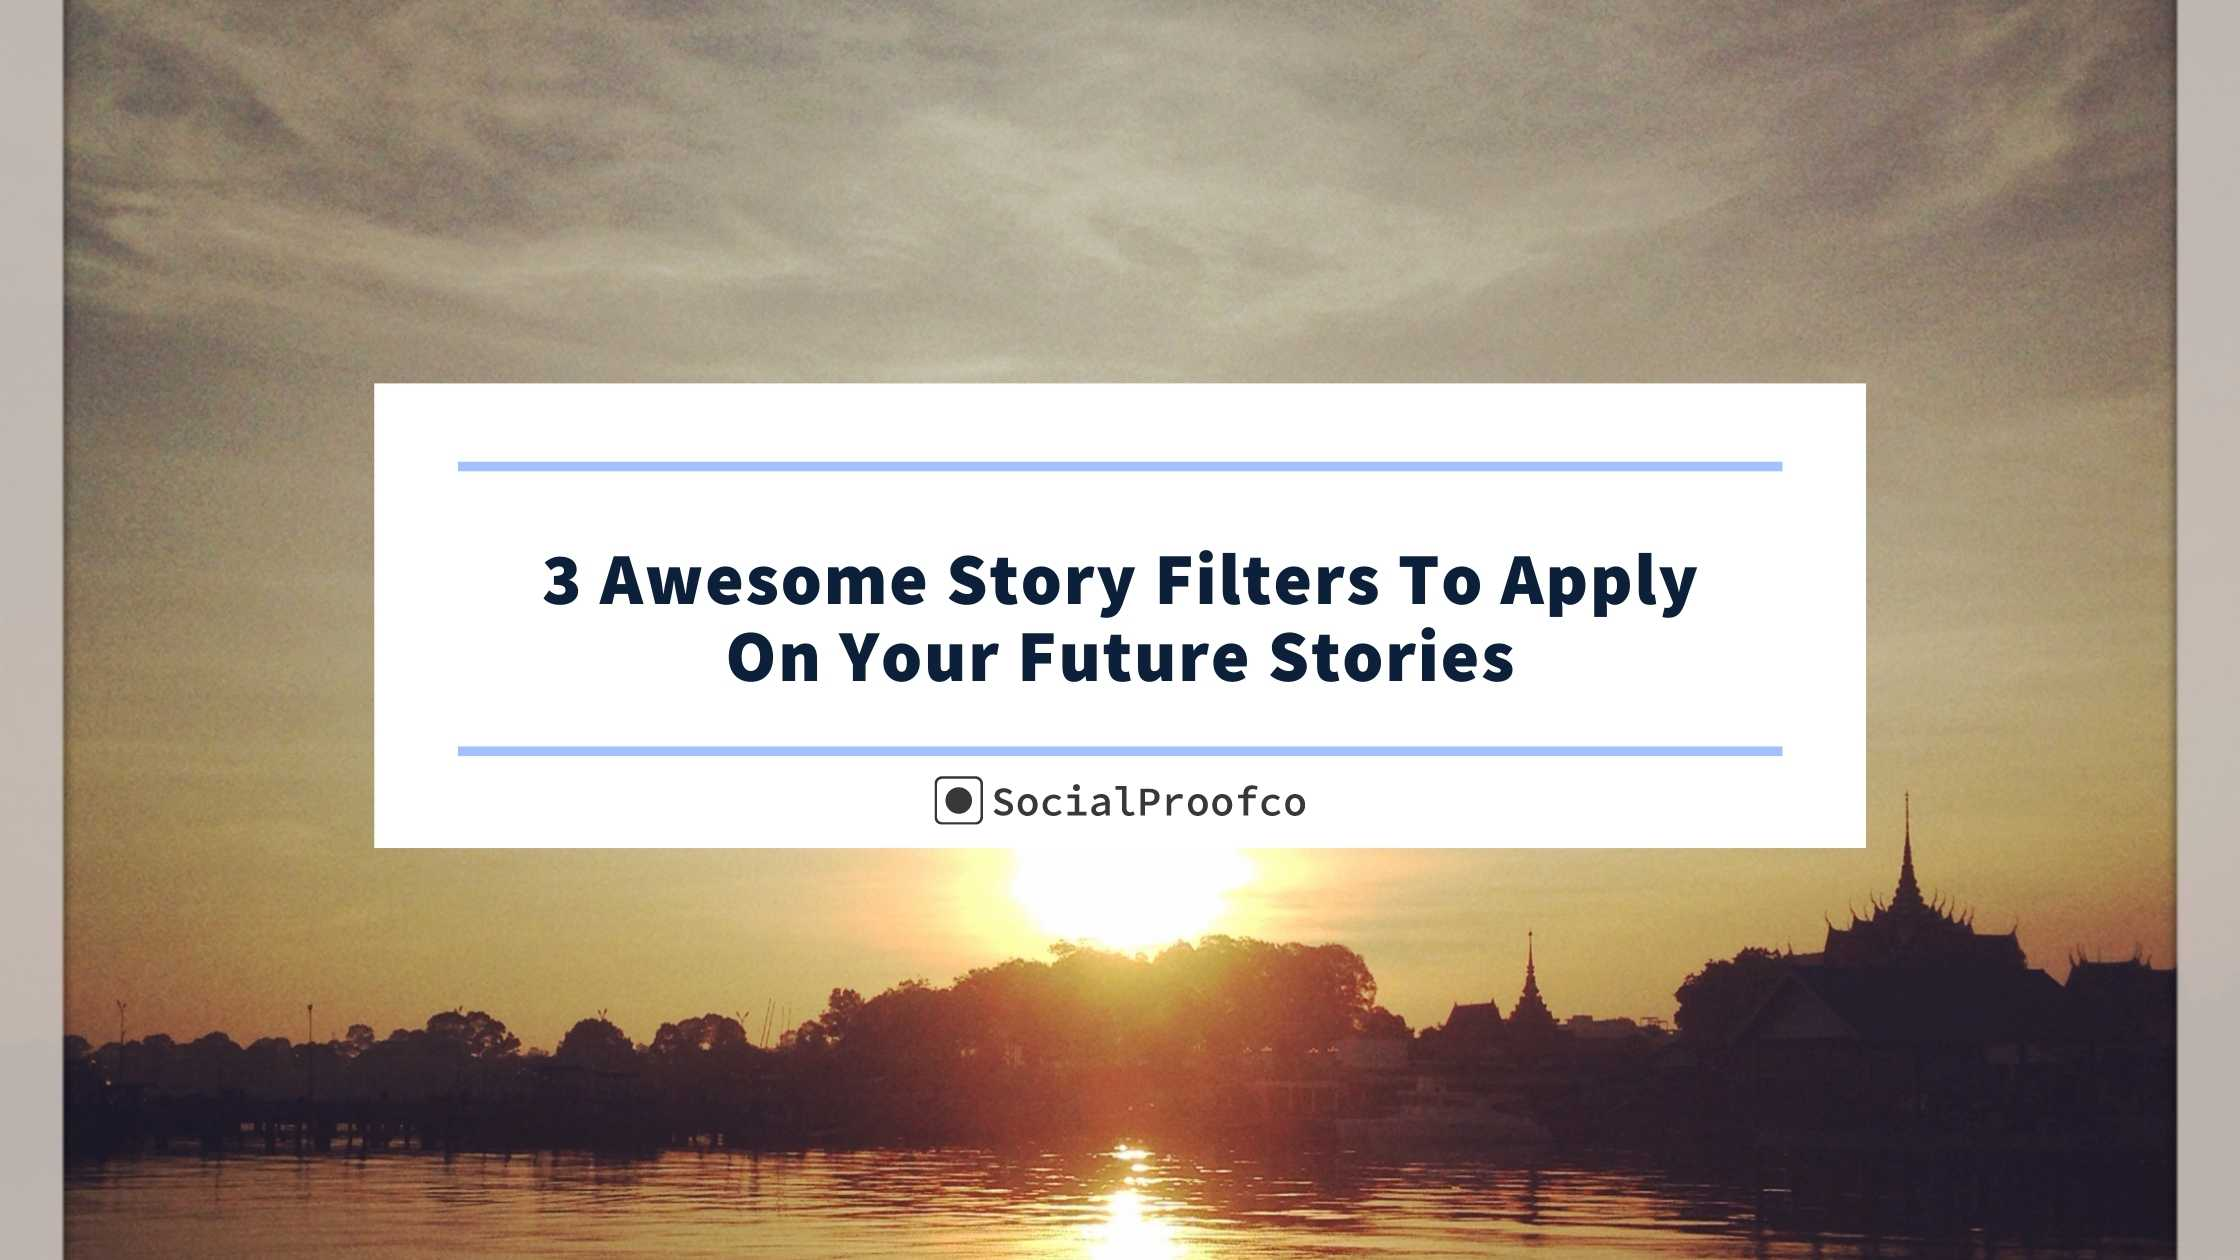 3 Awesome Story Filters To Apply On Your Future Stories